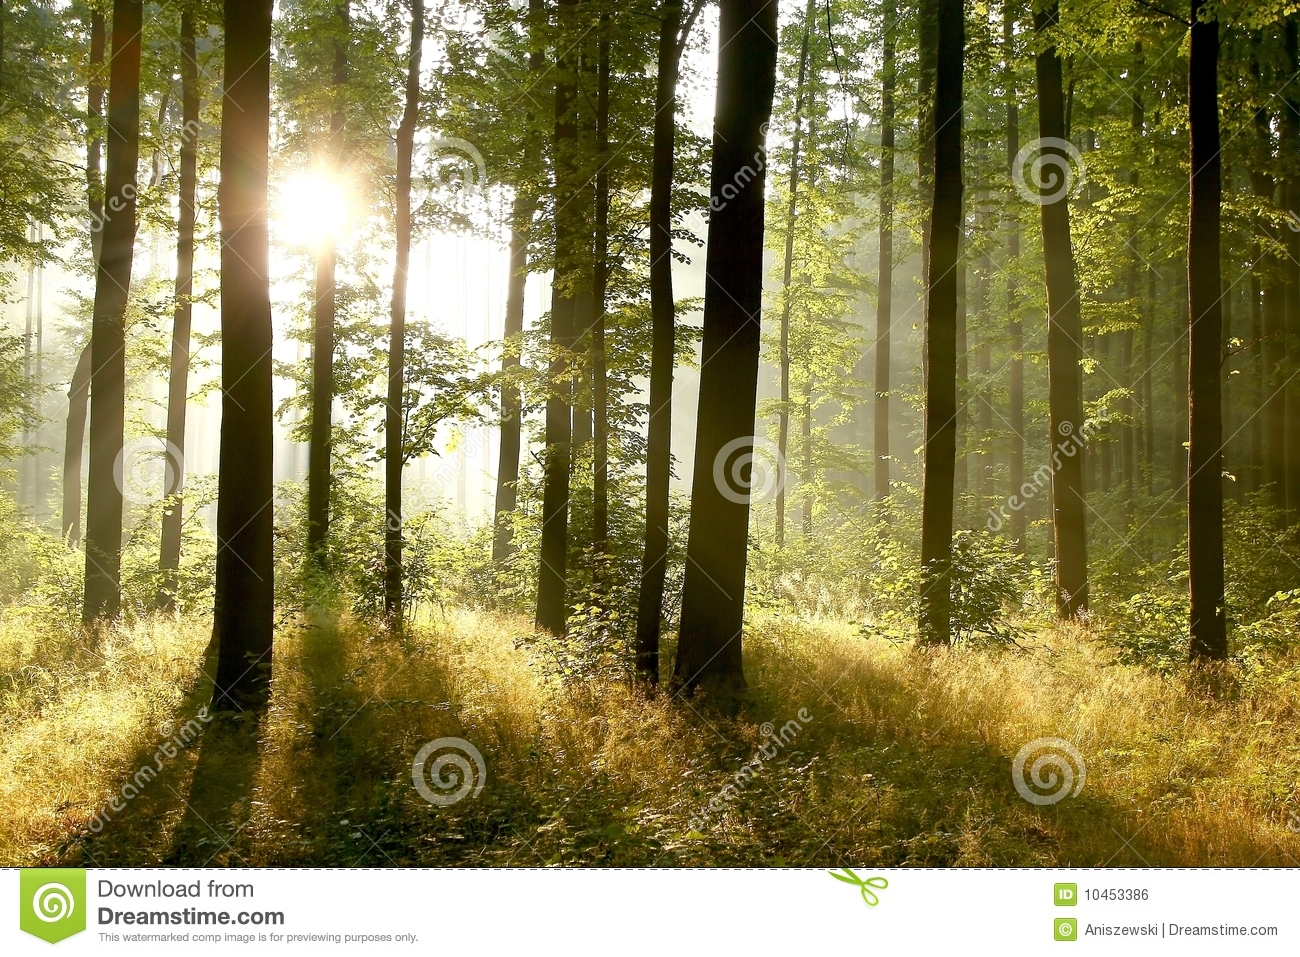 Fall Foliage Wallpaper Summer Forest In The Early Morning Stock Photo Image